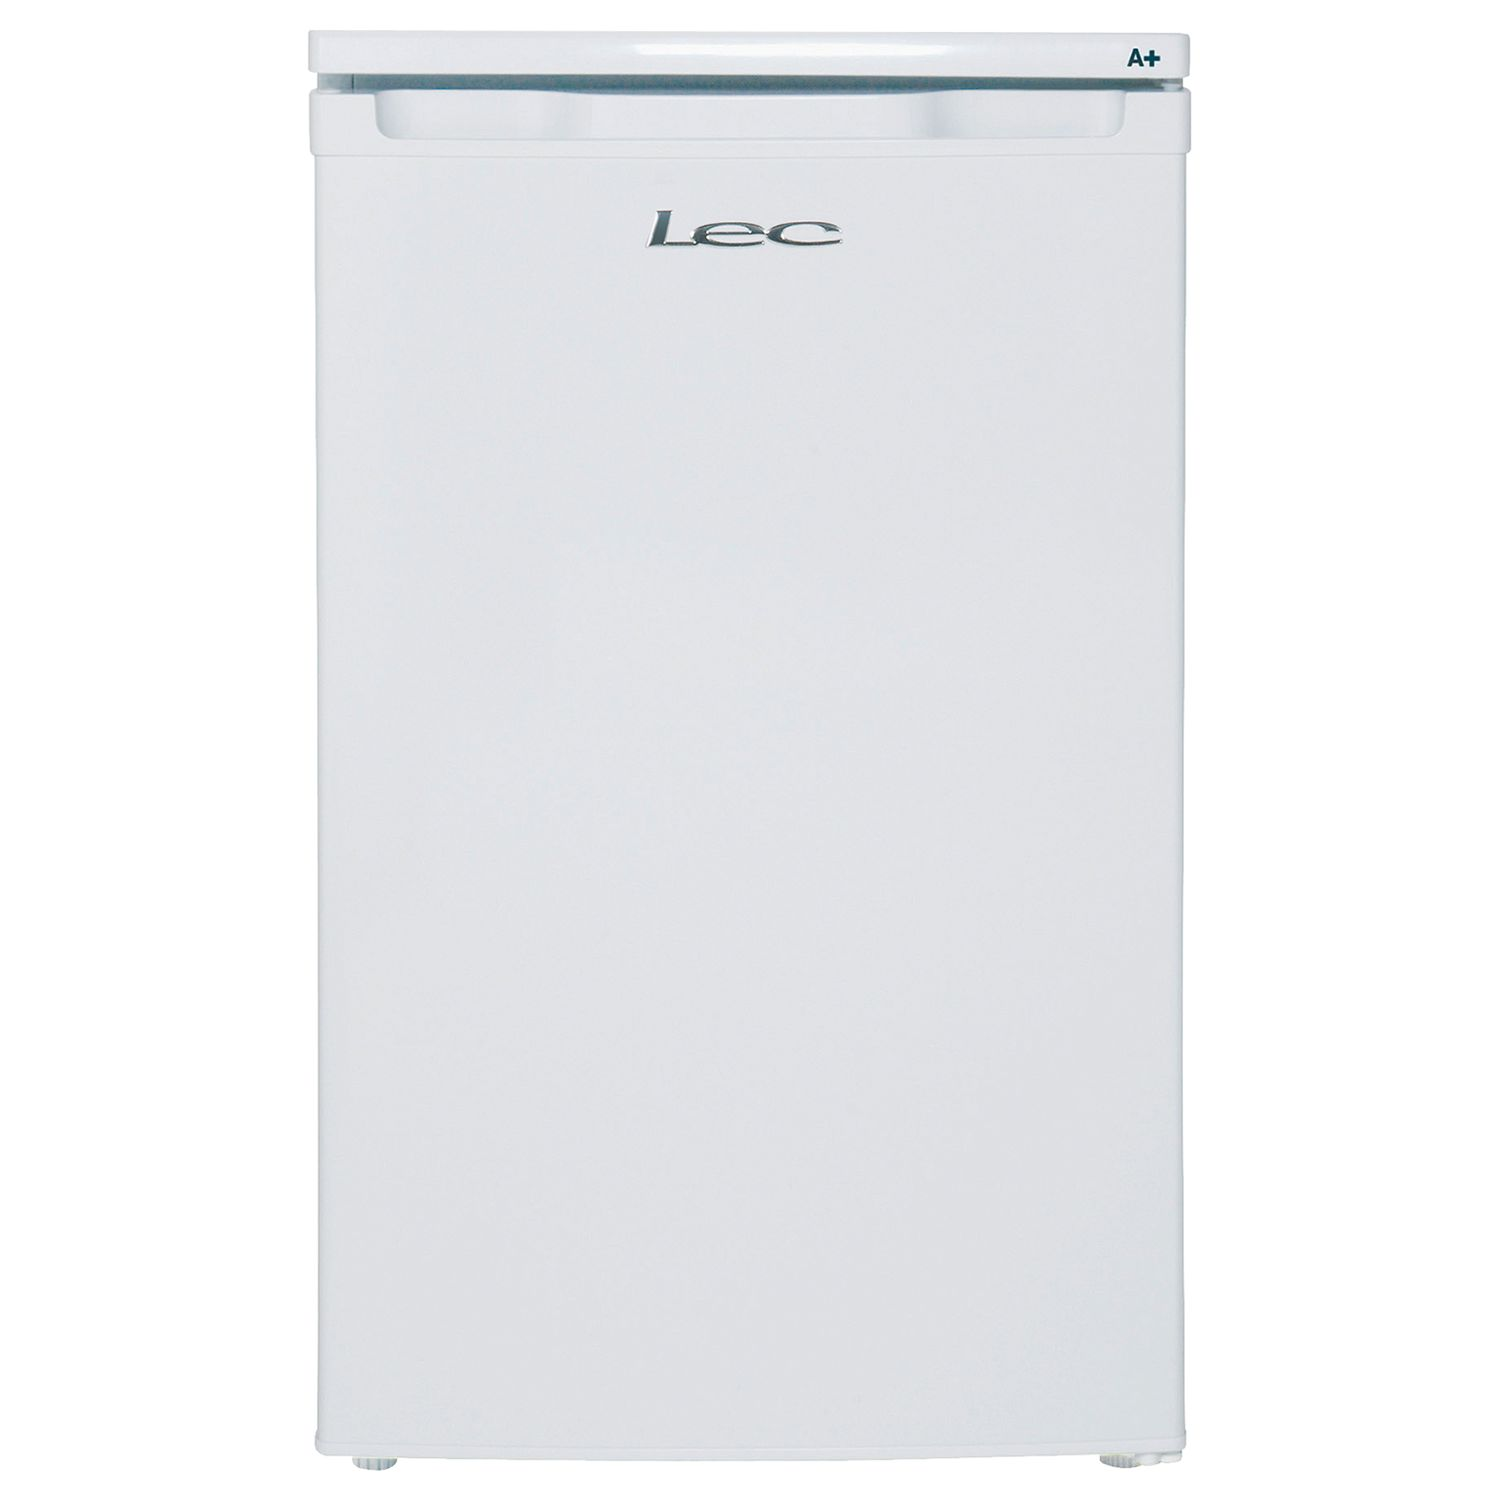 LEC Lec R5511W Fridge with Freezer Compartment, A+ Energy Rating, 55cm Wide, White